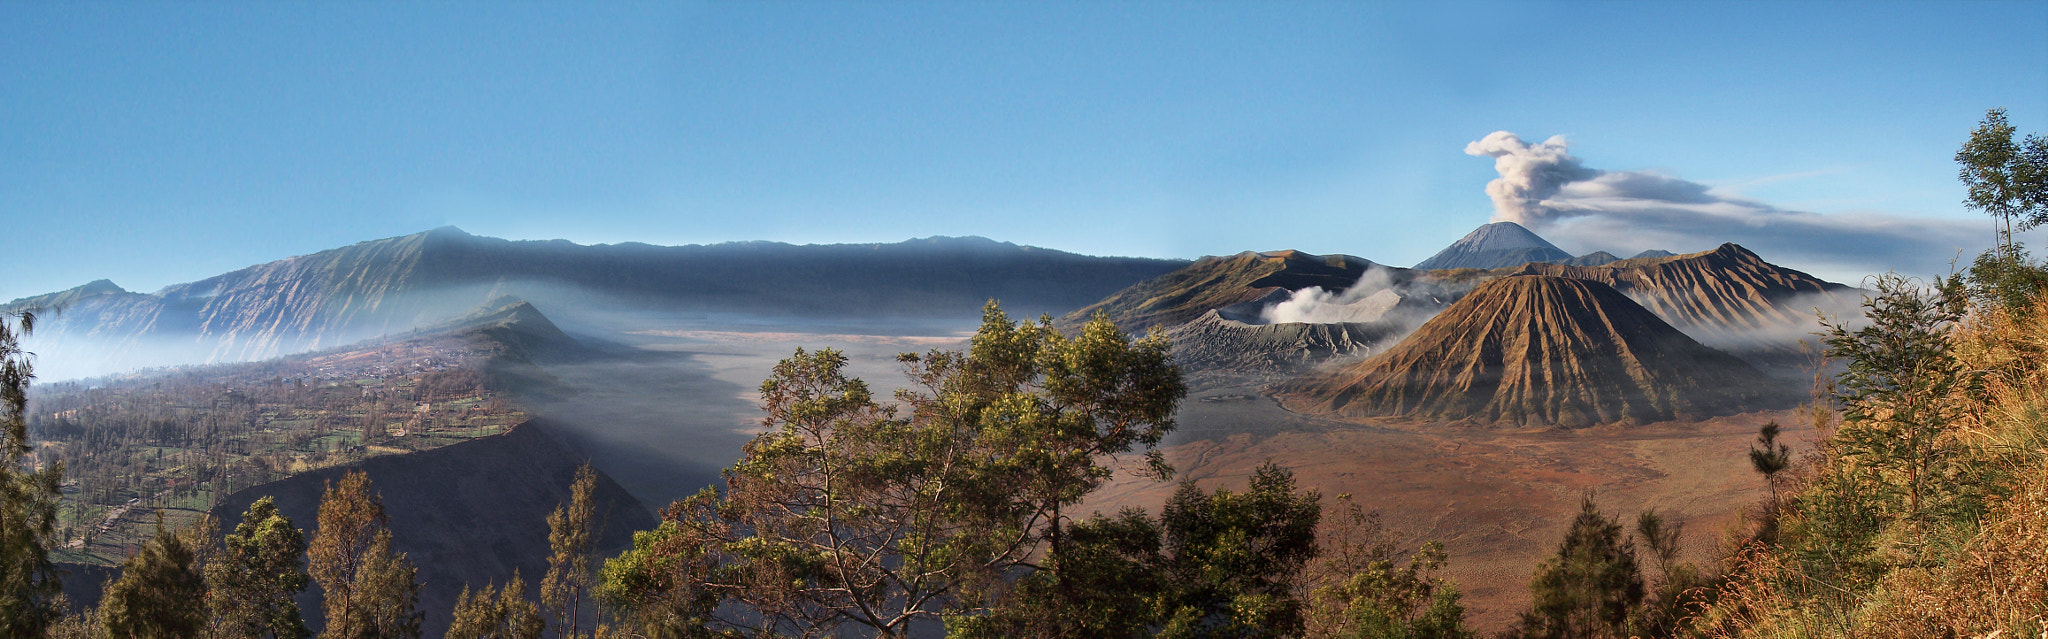 Photograph Bromo's Wide Side by Igor Pilawski on 500px